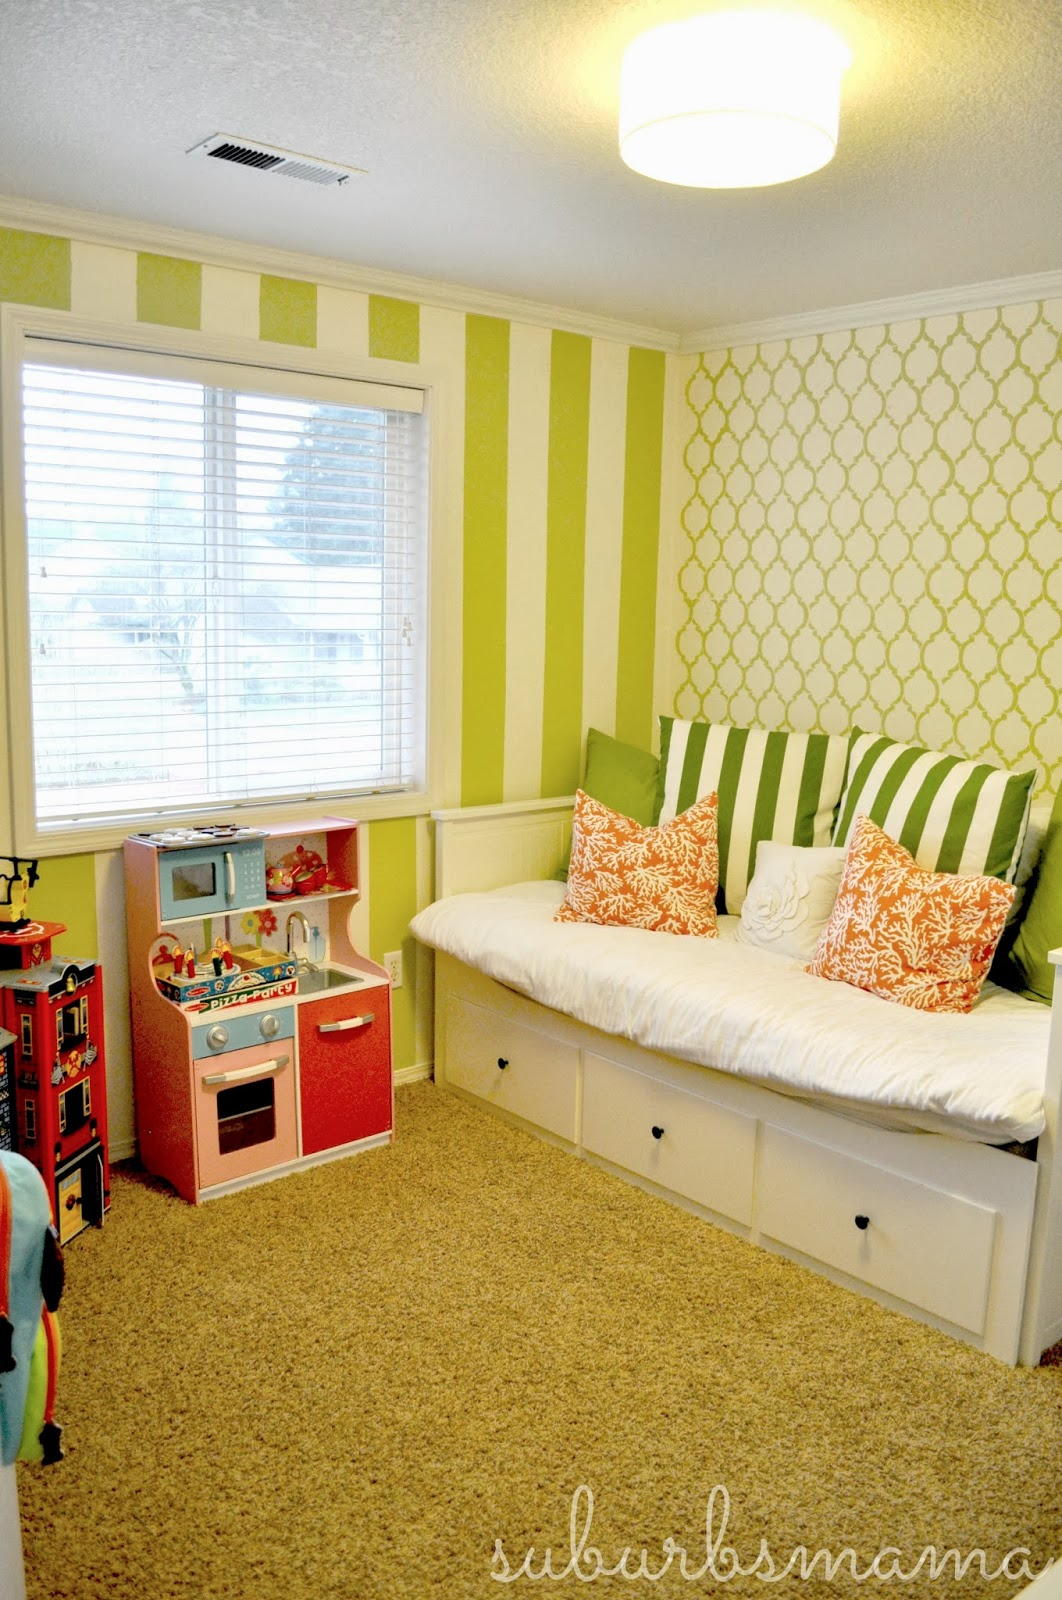 Suburbs Mama: Play Room/Guest Room Update